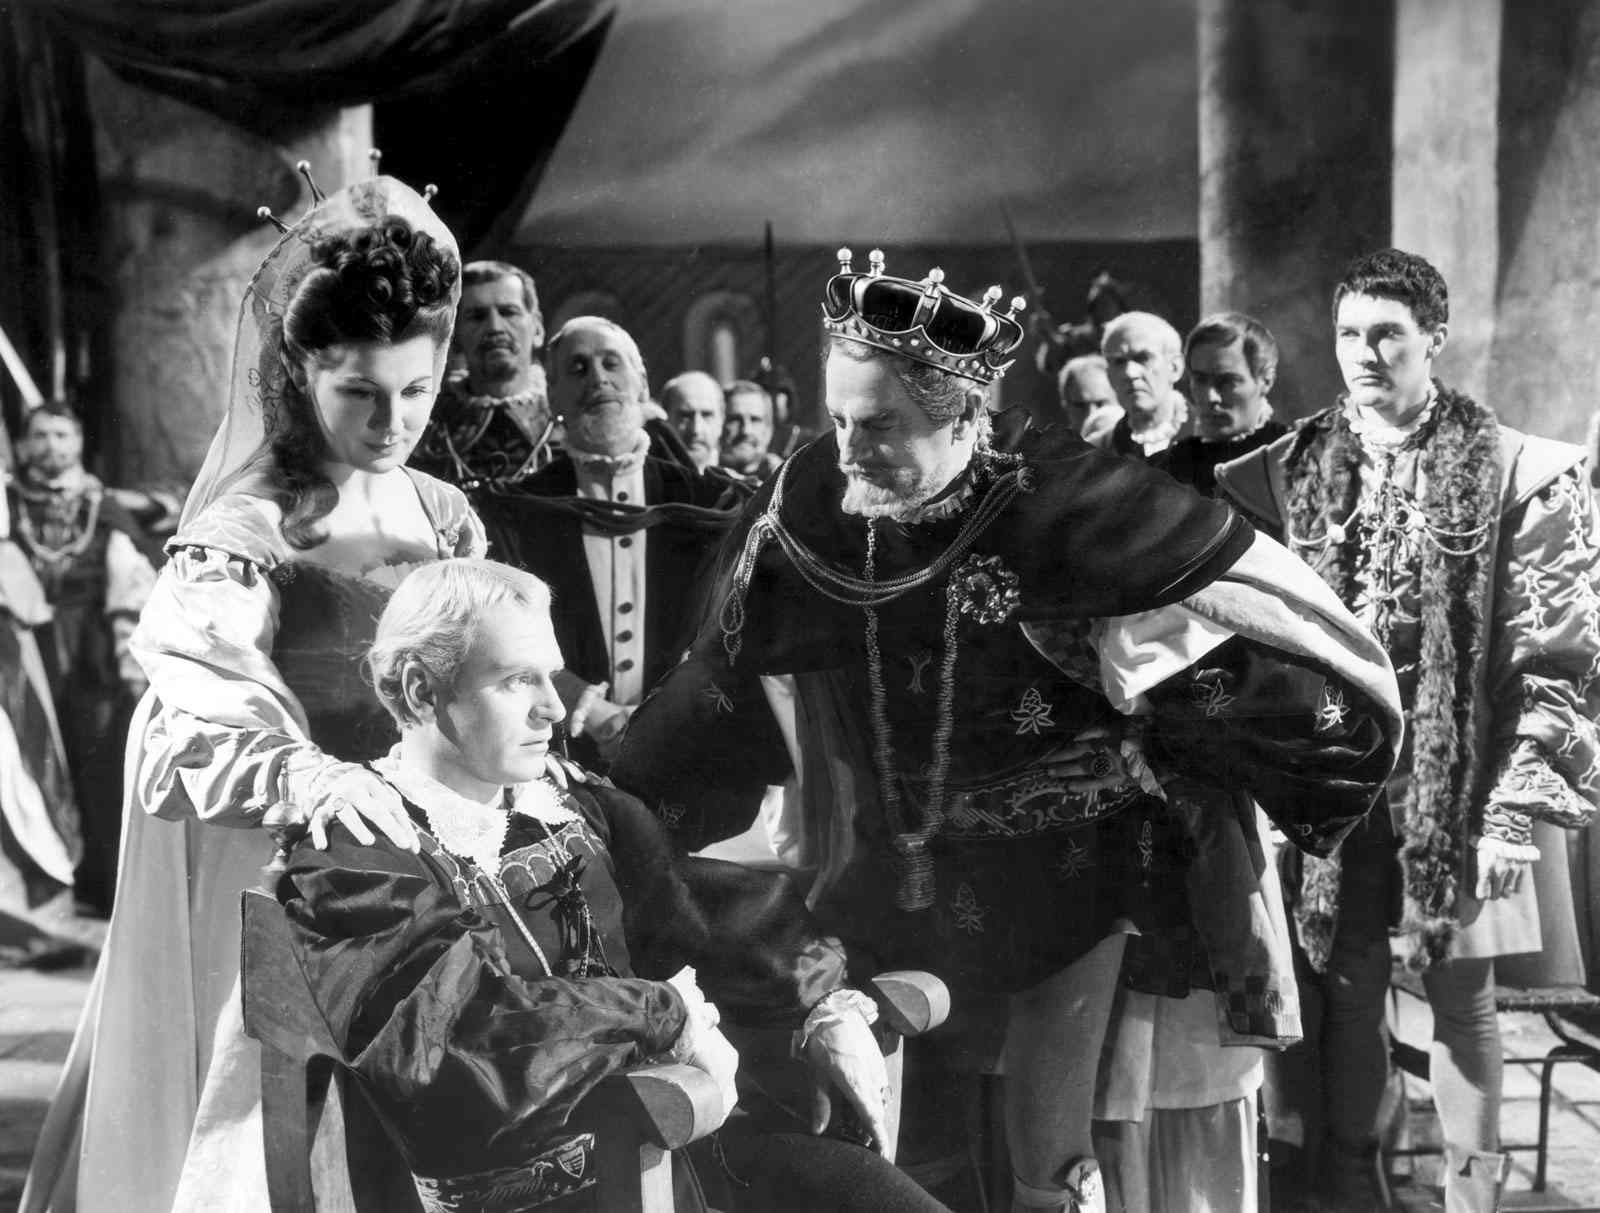 hamlet v claudius He has come to tell them that claudius wants hamlet to fence with laertes and  that the king has made a wager with laertes that hamlet will win then osric.